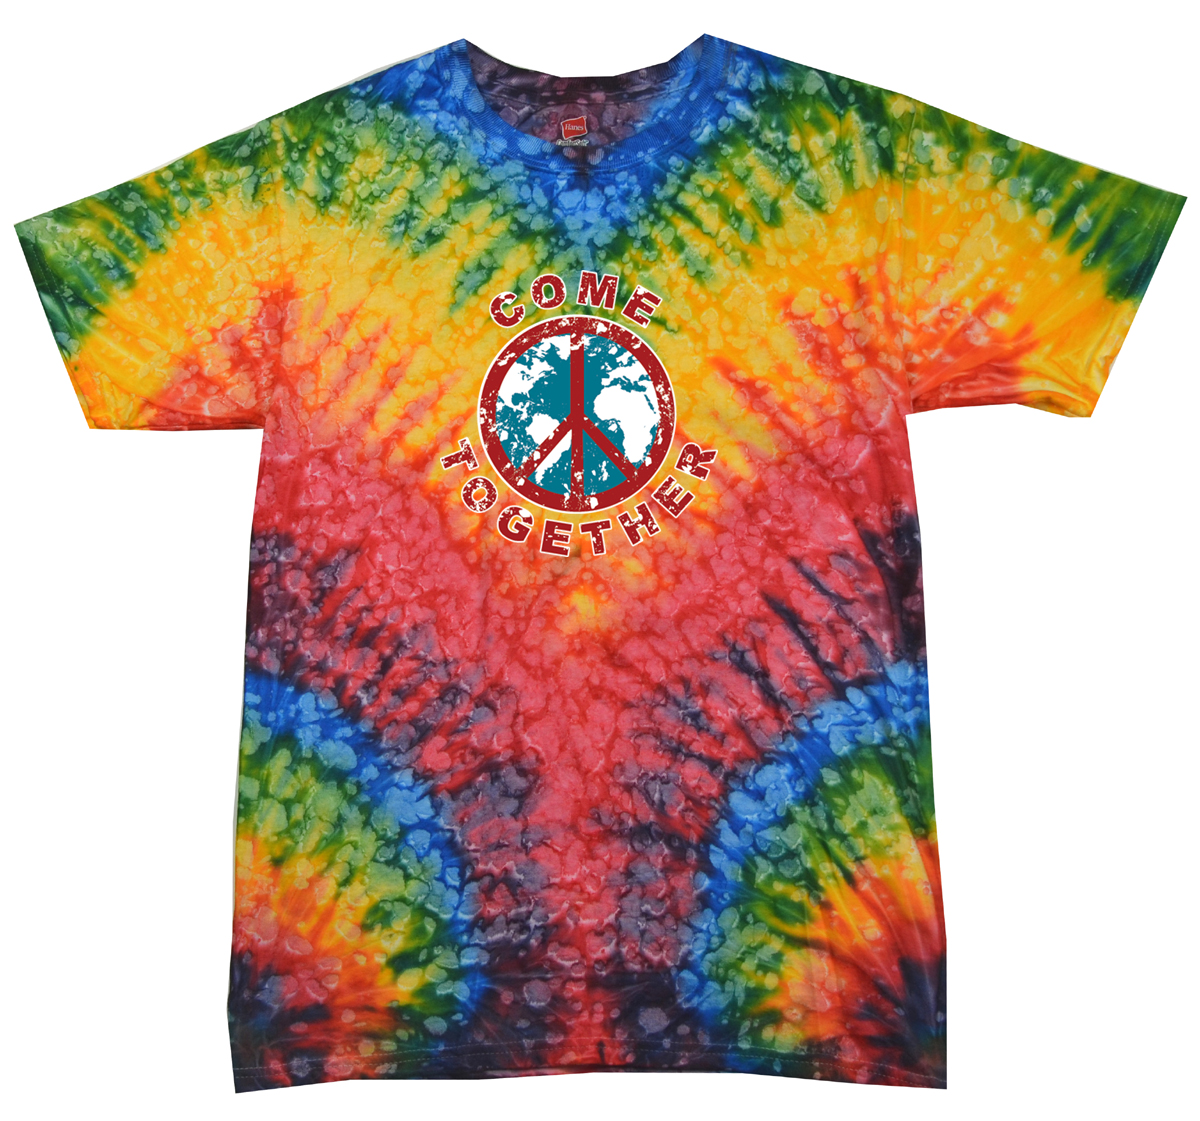 Ford Mustang T Shirts >> Kids Peace Tie Dye Shirt Come Together Woodstock Youth Tie ...